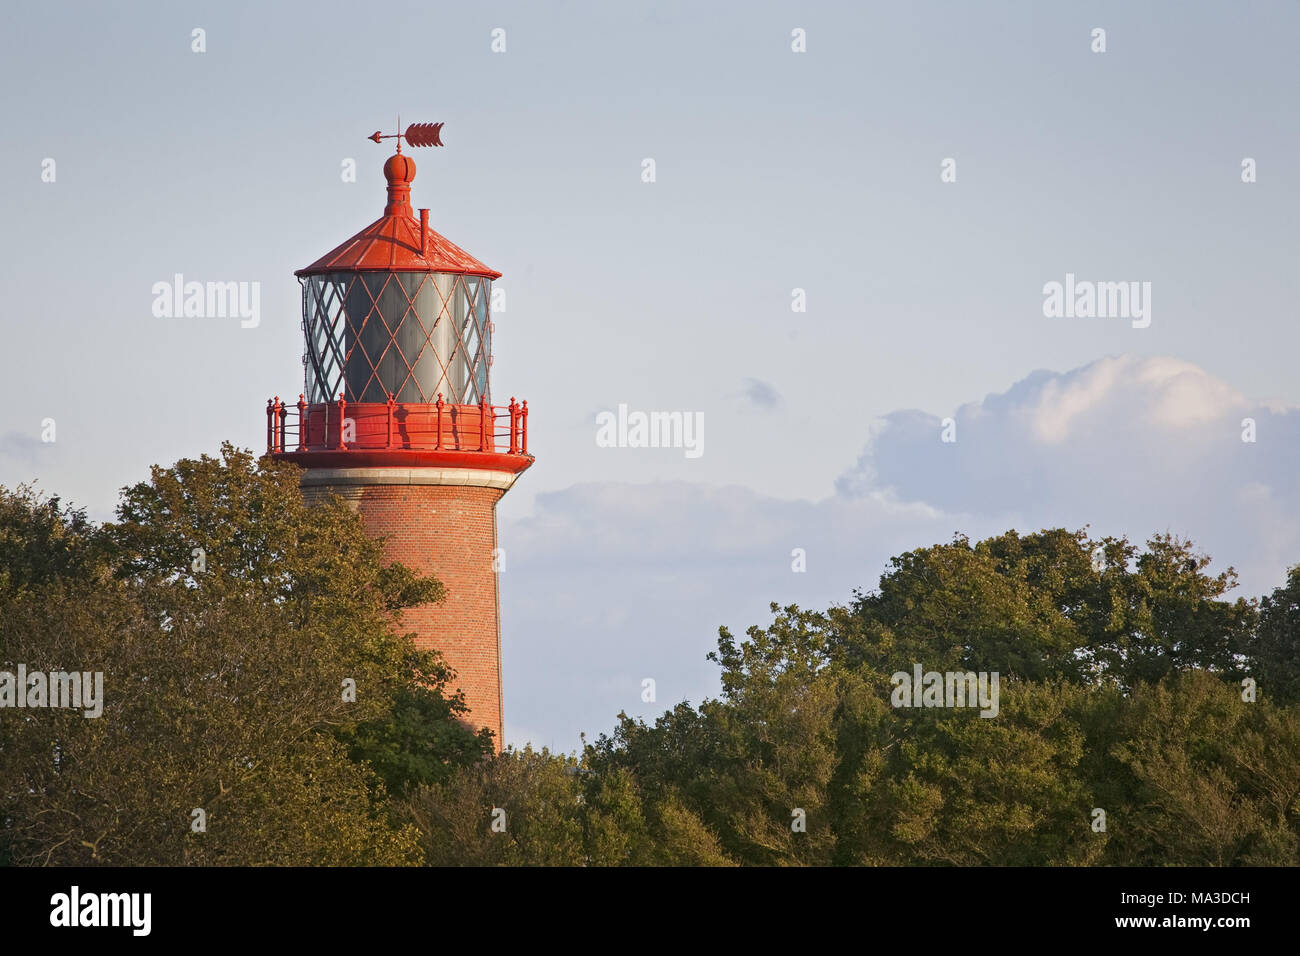 Lighthouse Staberhuk, island Fehmarn, Schleswig - Holstein, North Germany, Germany, Stock Photo